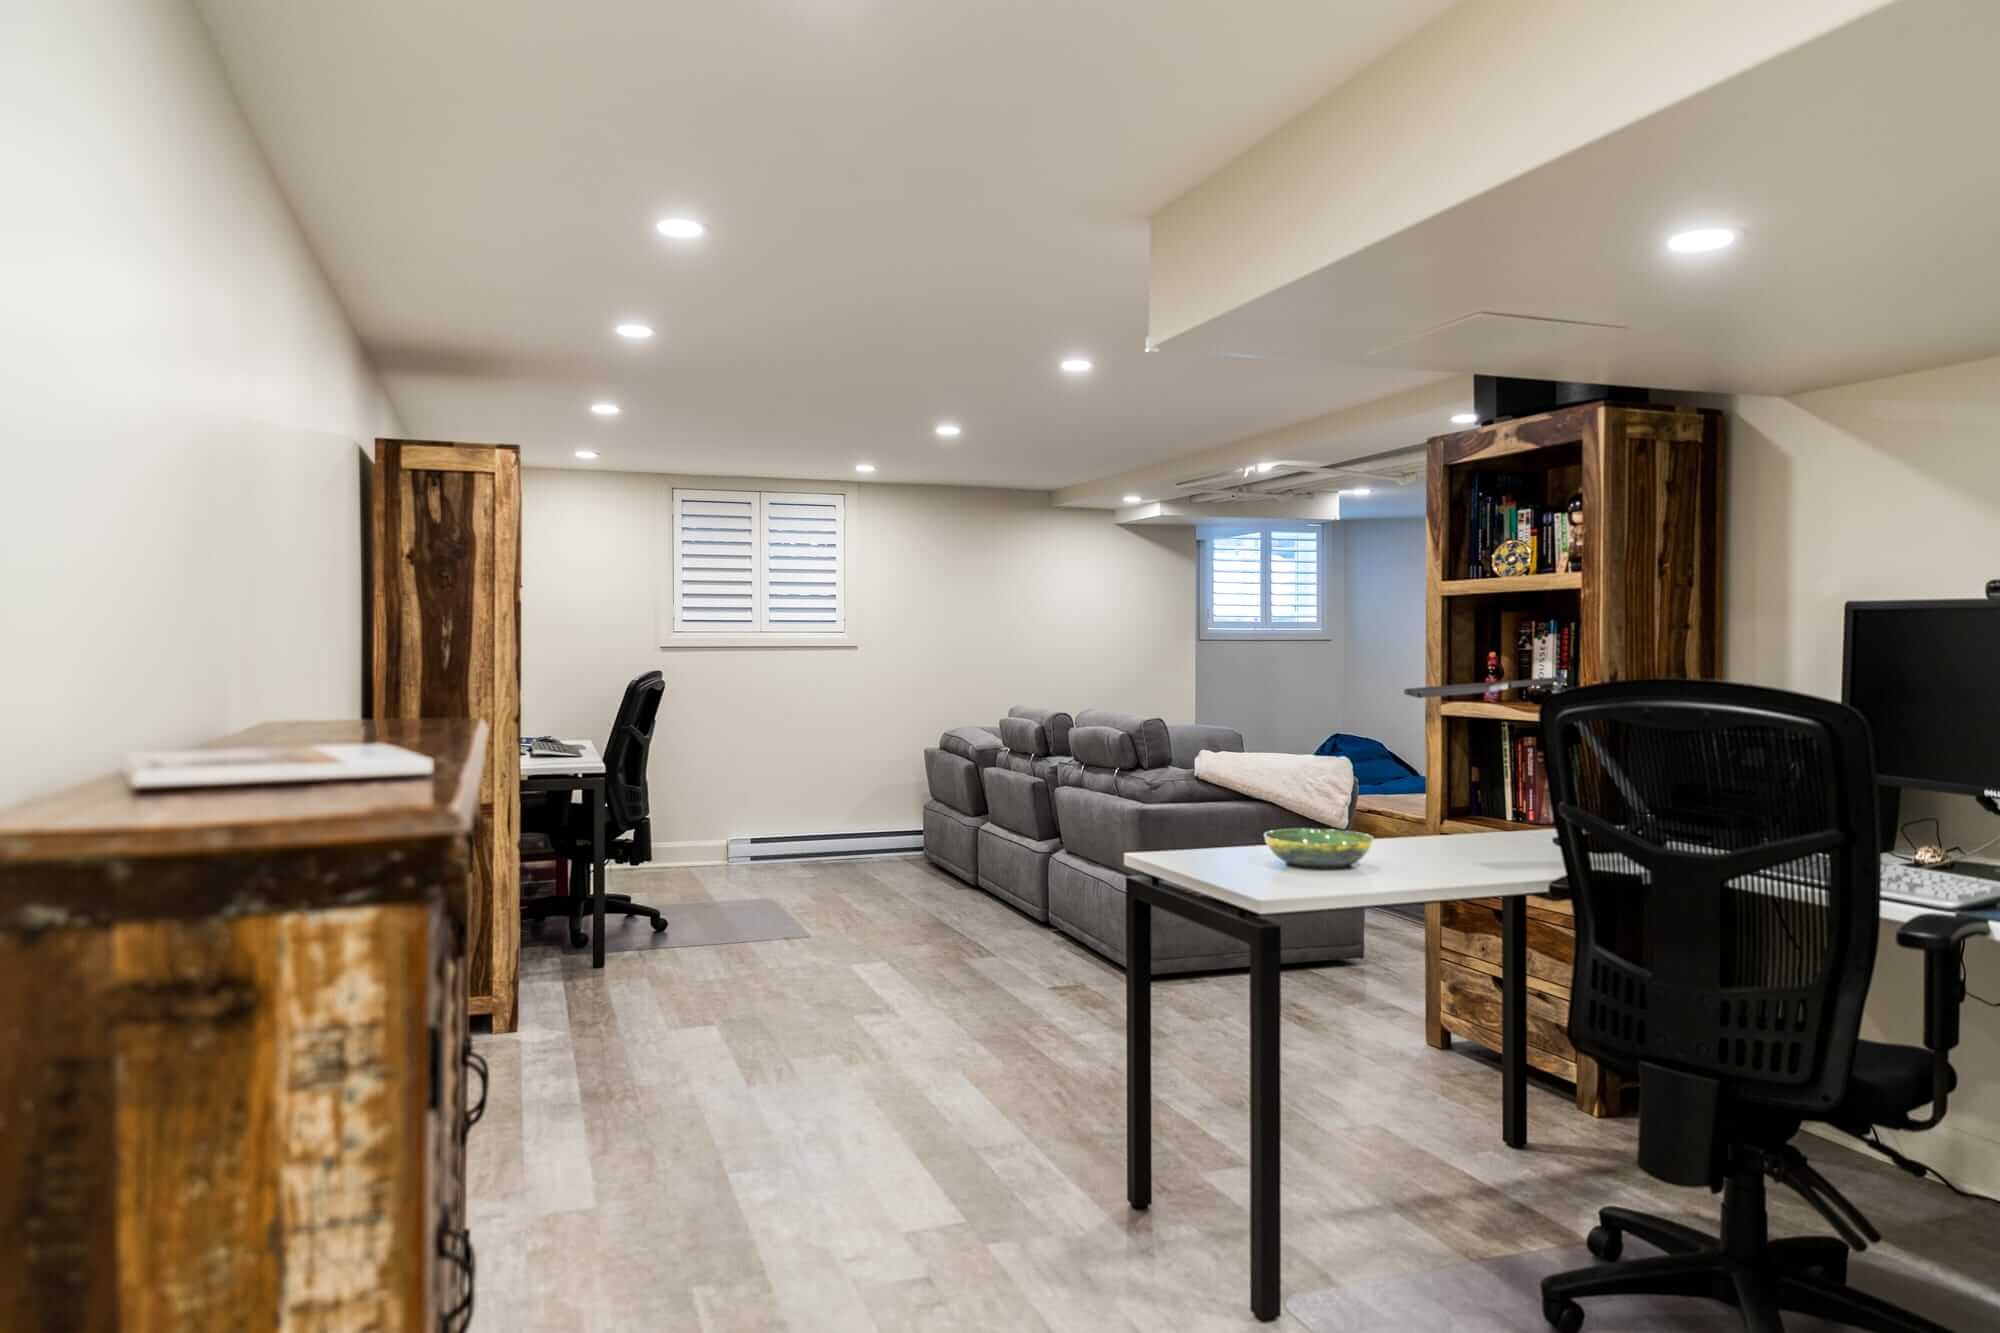 Basement renovation with grey floating floor, beige walls and wooden furniture